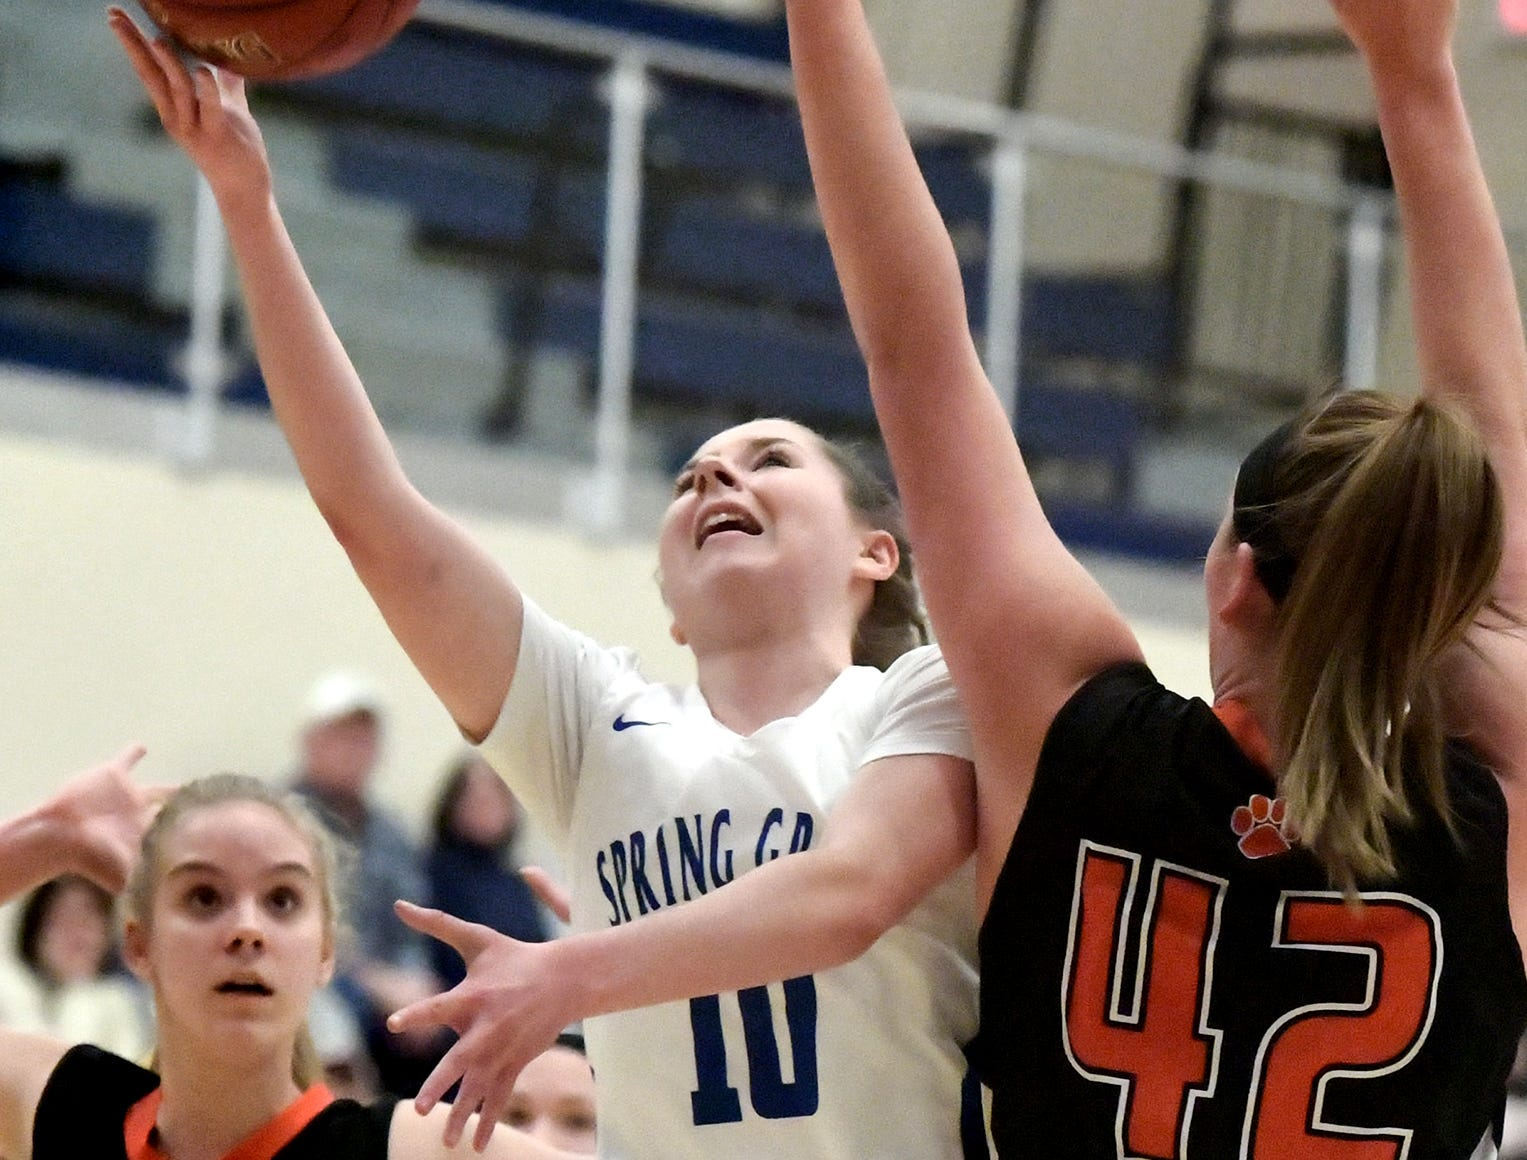 Spring Grove's Ellie Glass drives to the basket past Central York's Emily Prowell during basketball action at Spring Grove Tuesday, Jan. 8, 2019. Bill Kalina photo